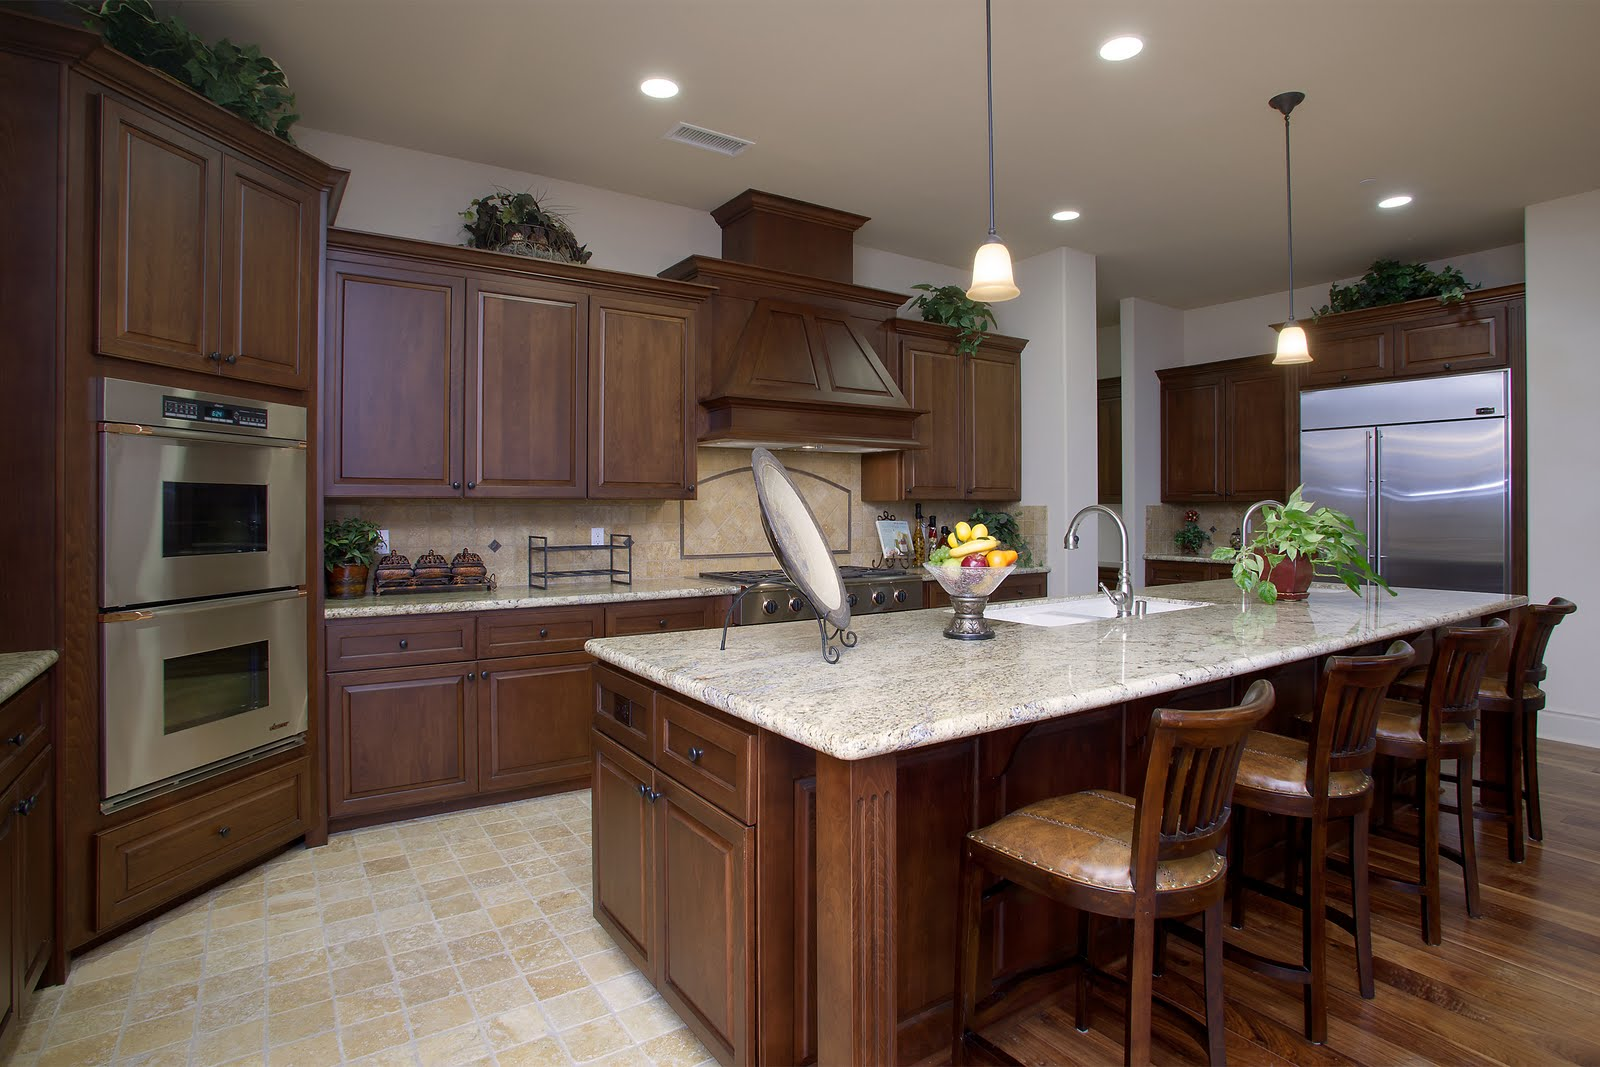 Kitchen Model Kitchen Model Homes  Wallpaper Side Blog